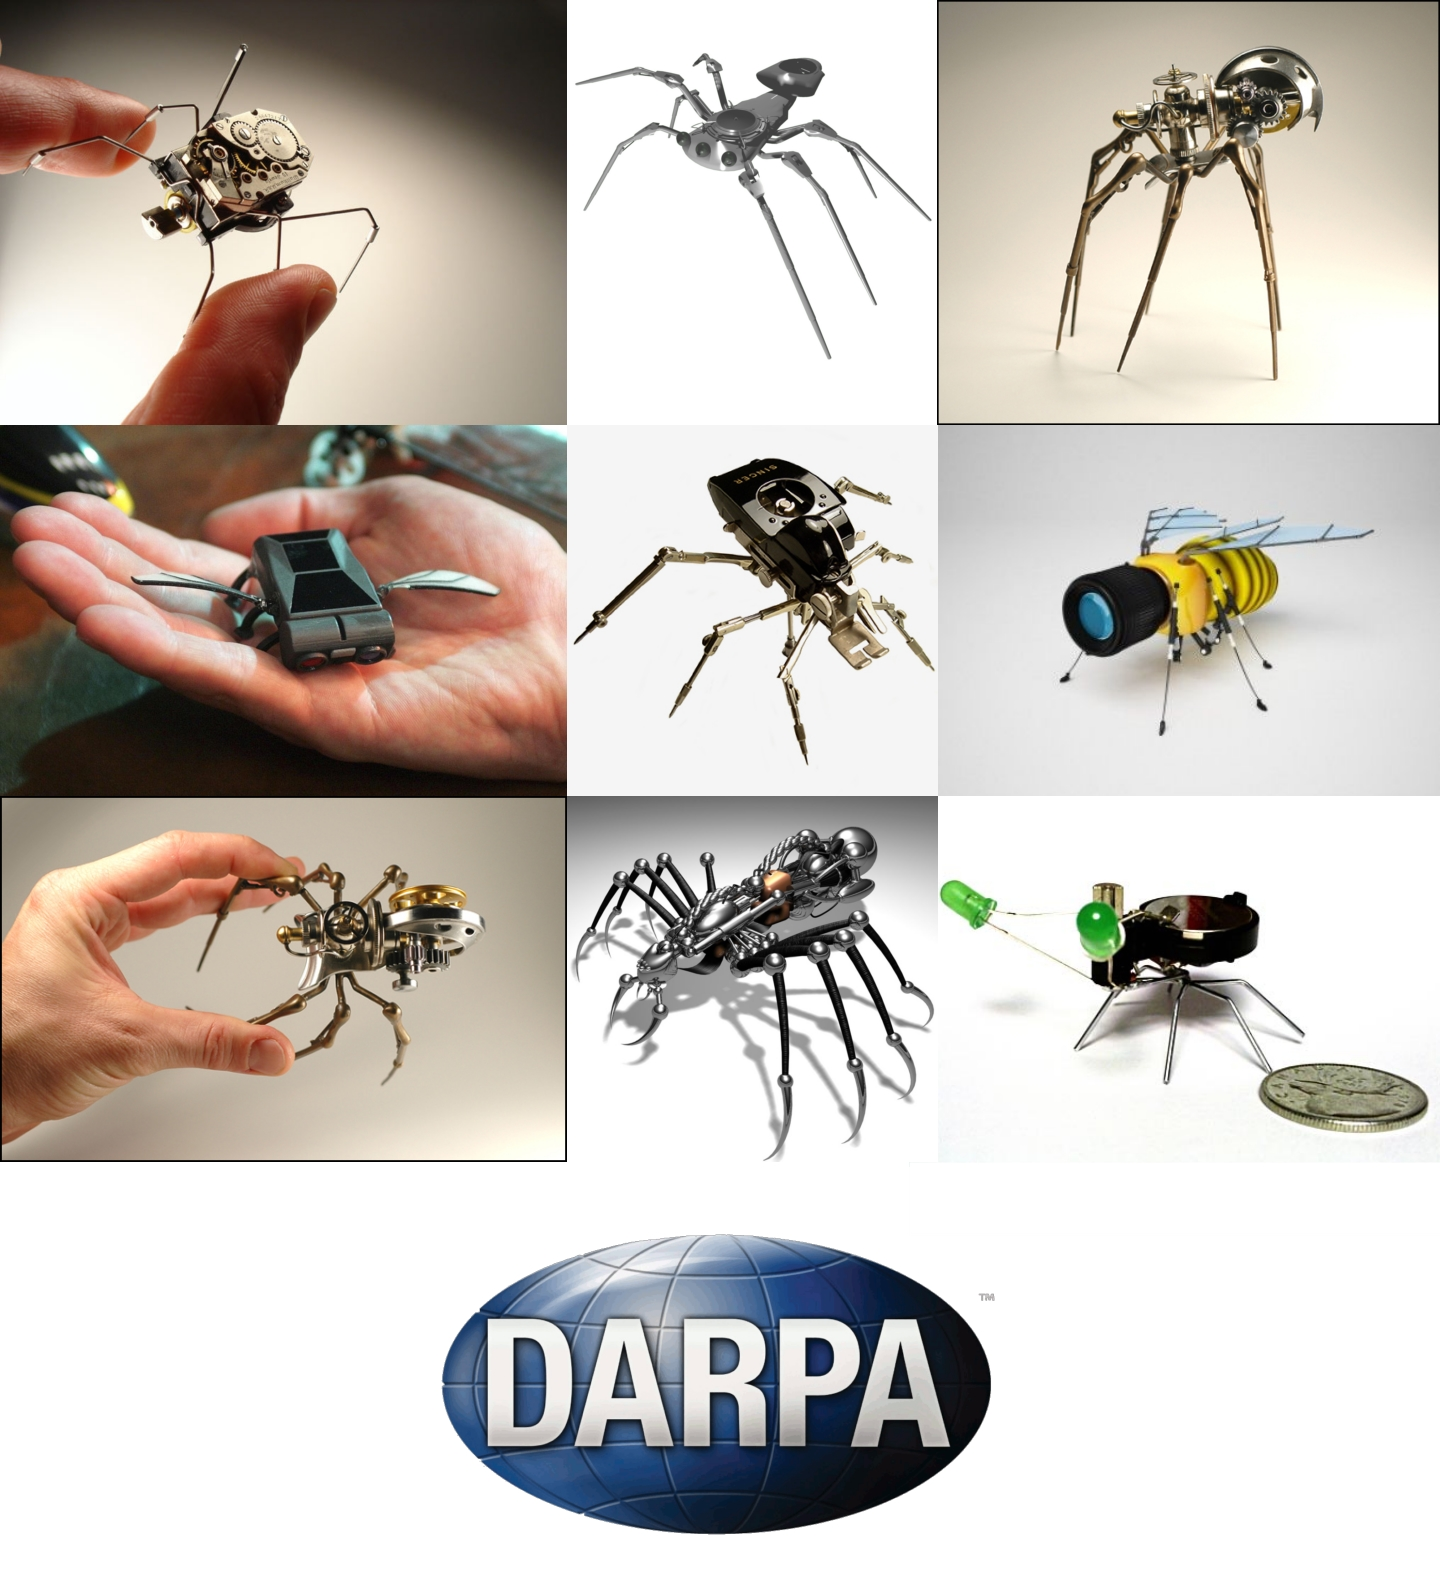 darpa secret projects